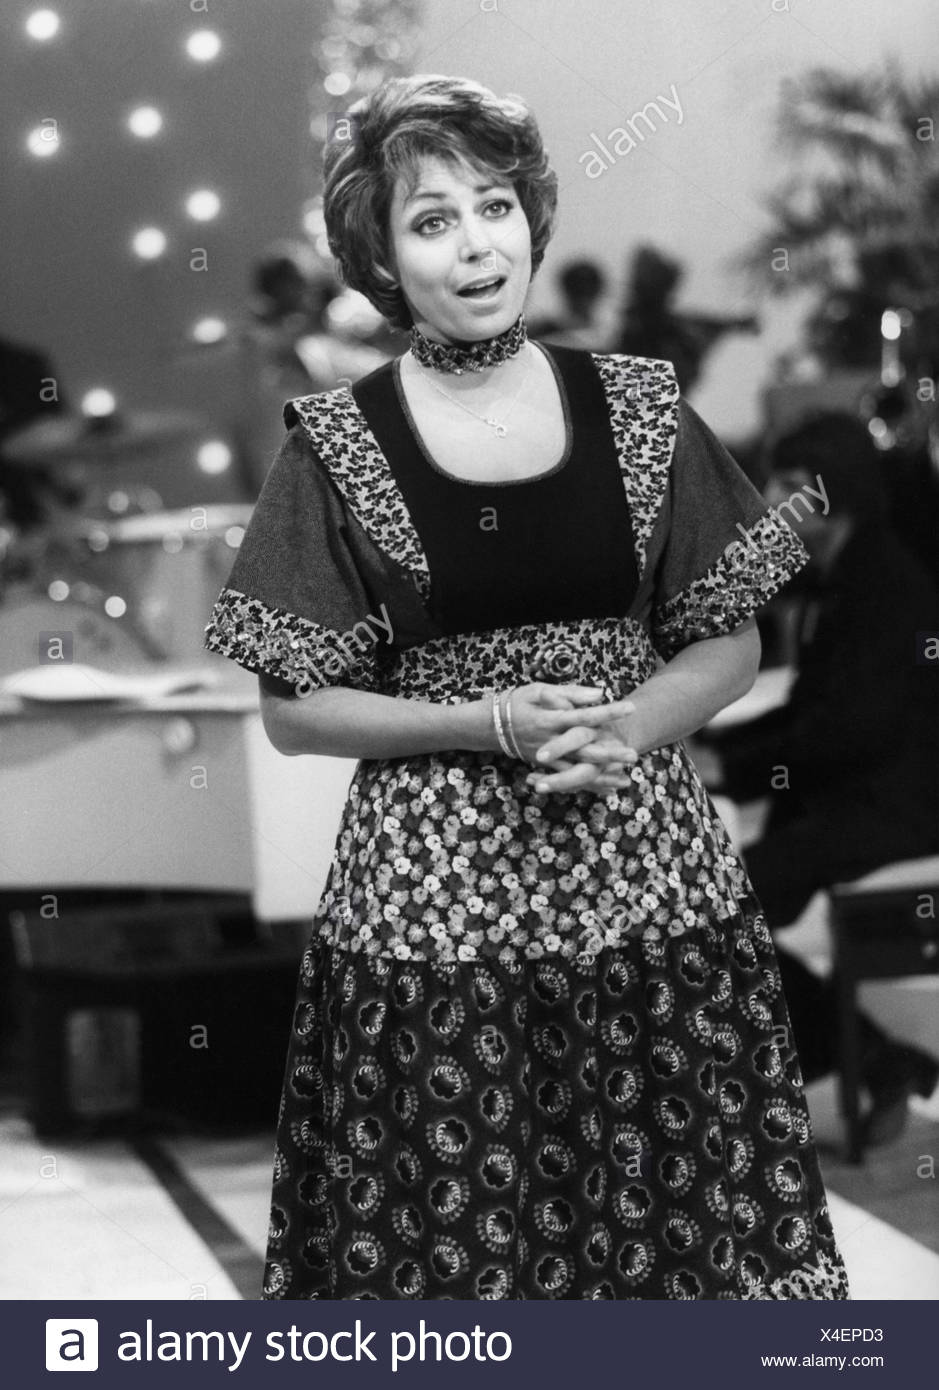 Corren, Carmela, * 13.2.1938, Israeli singer, half length, guest at ZDF TV show 'Spiel mir eine alte Melodie', Germany, 24.3.1977, Additional-Rights-Clearances-NA - Stock Image